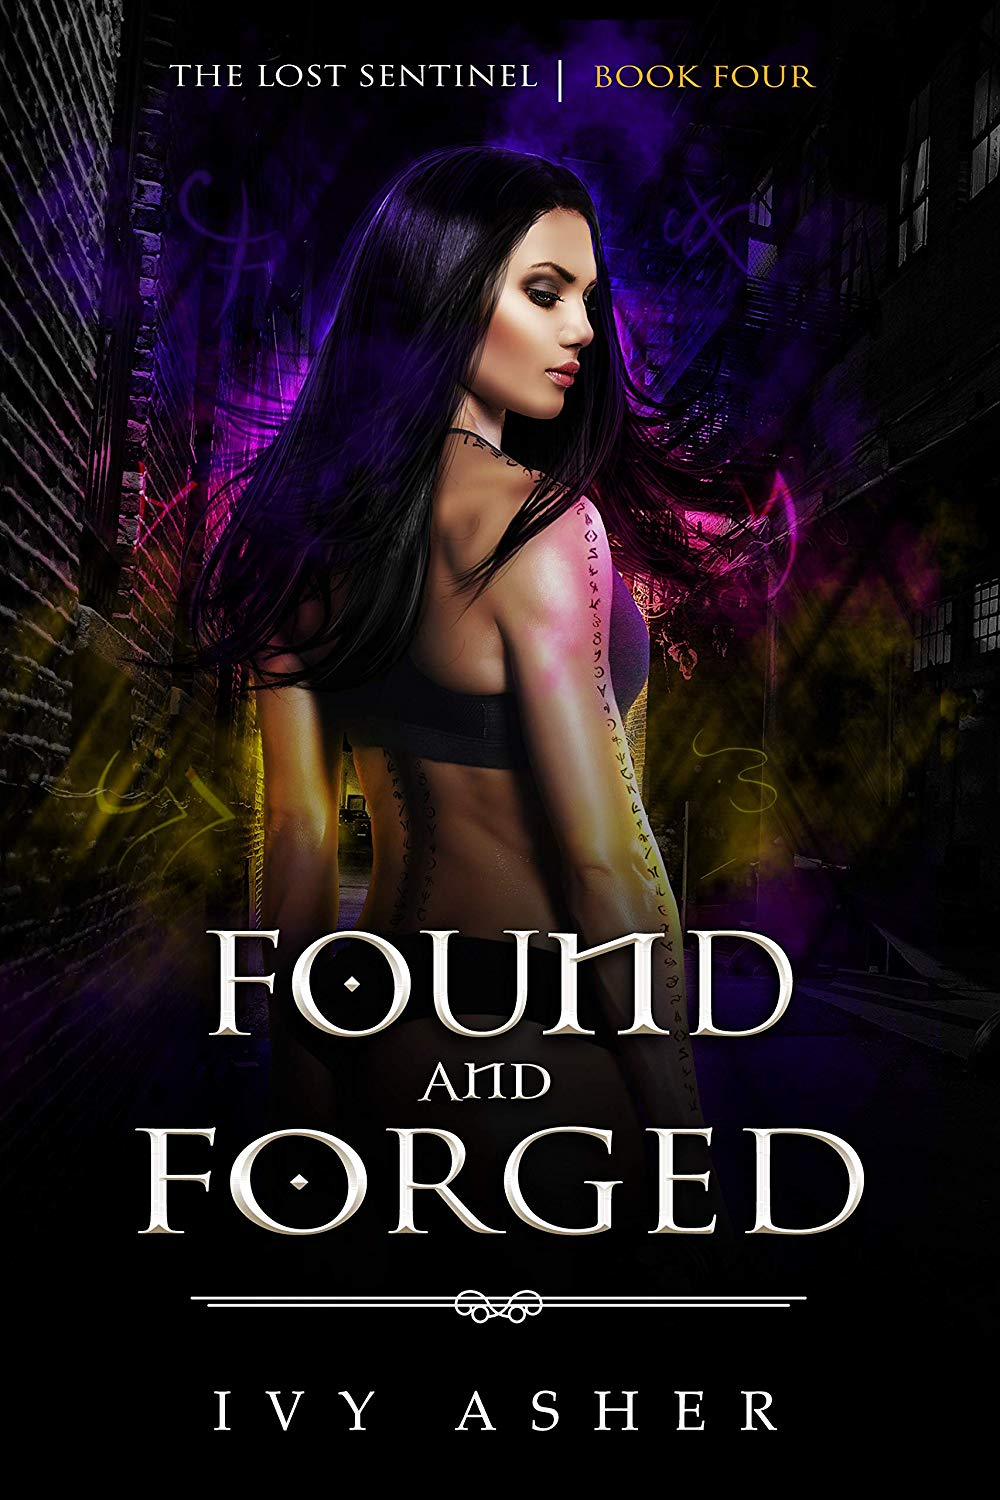 Found and Forged by Ivy Asher